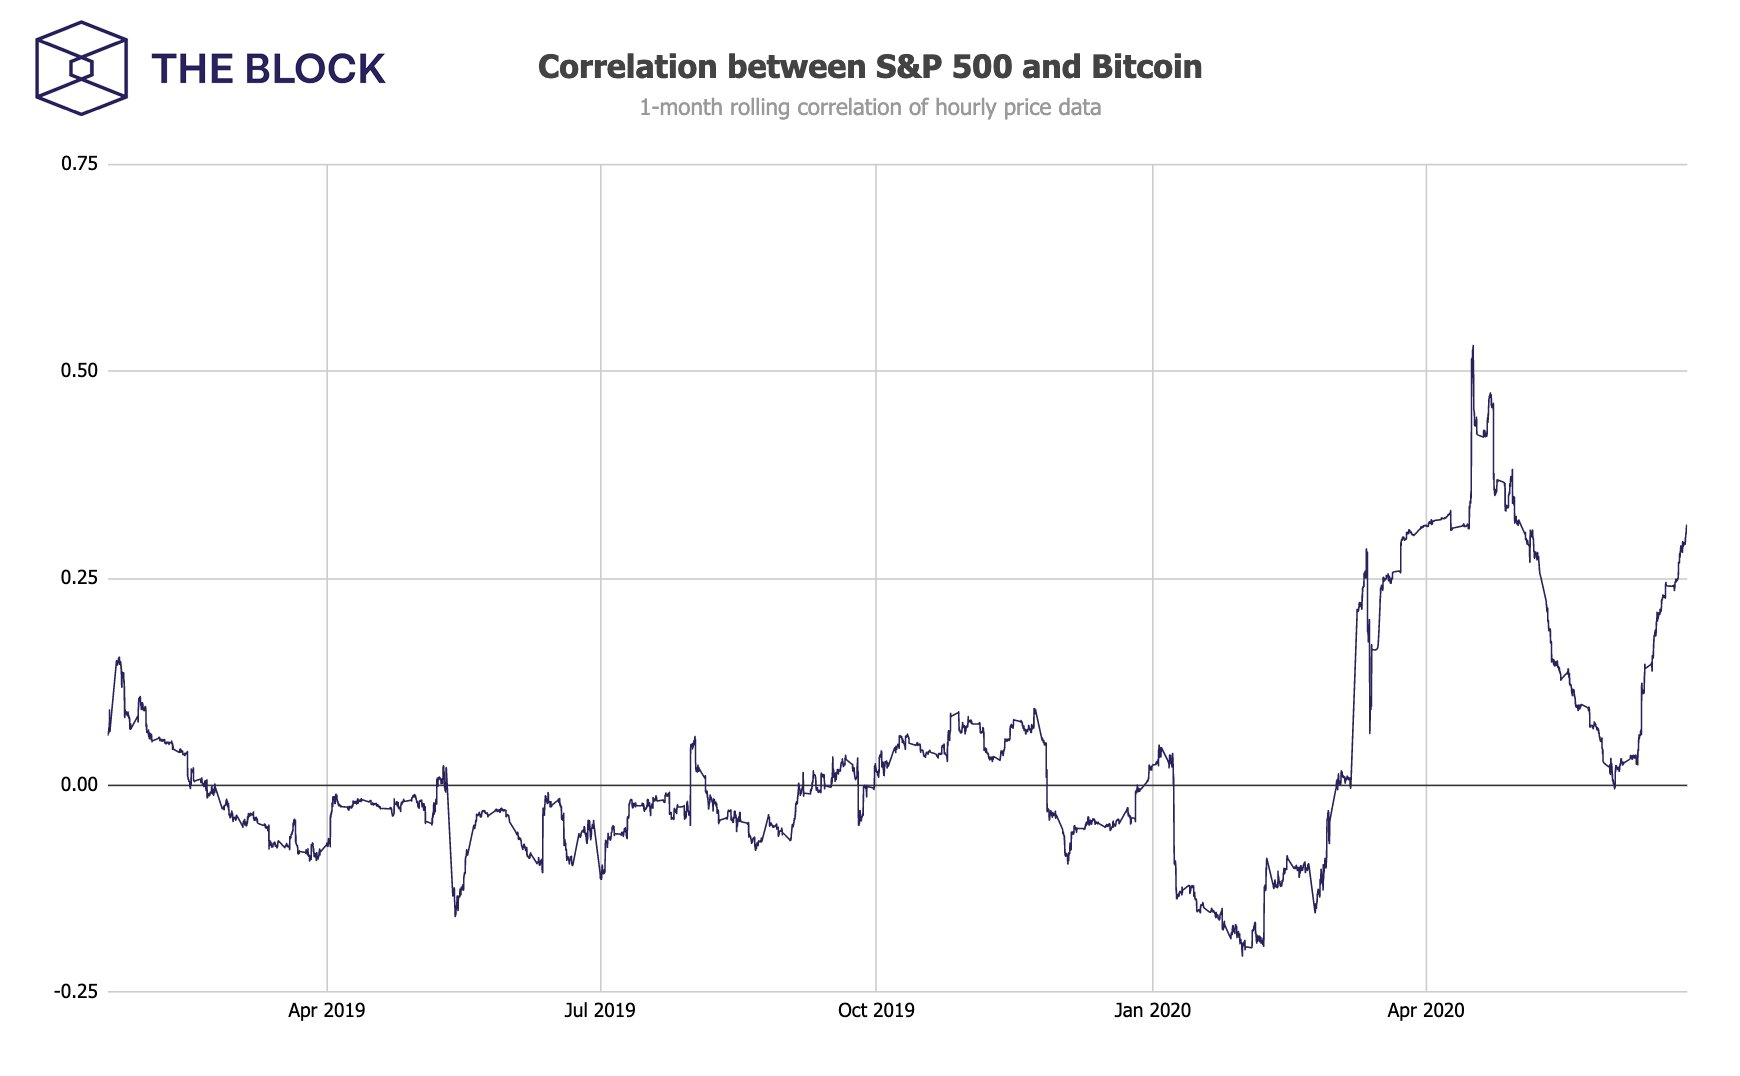 Correlation between S&P500 and Bitcoin